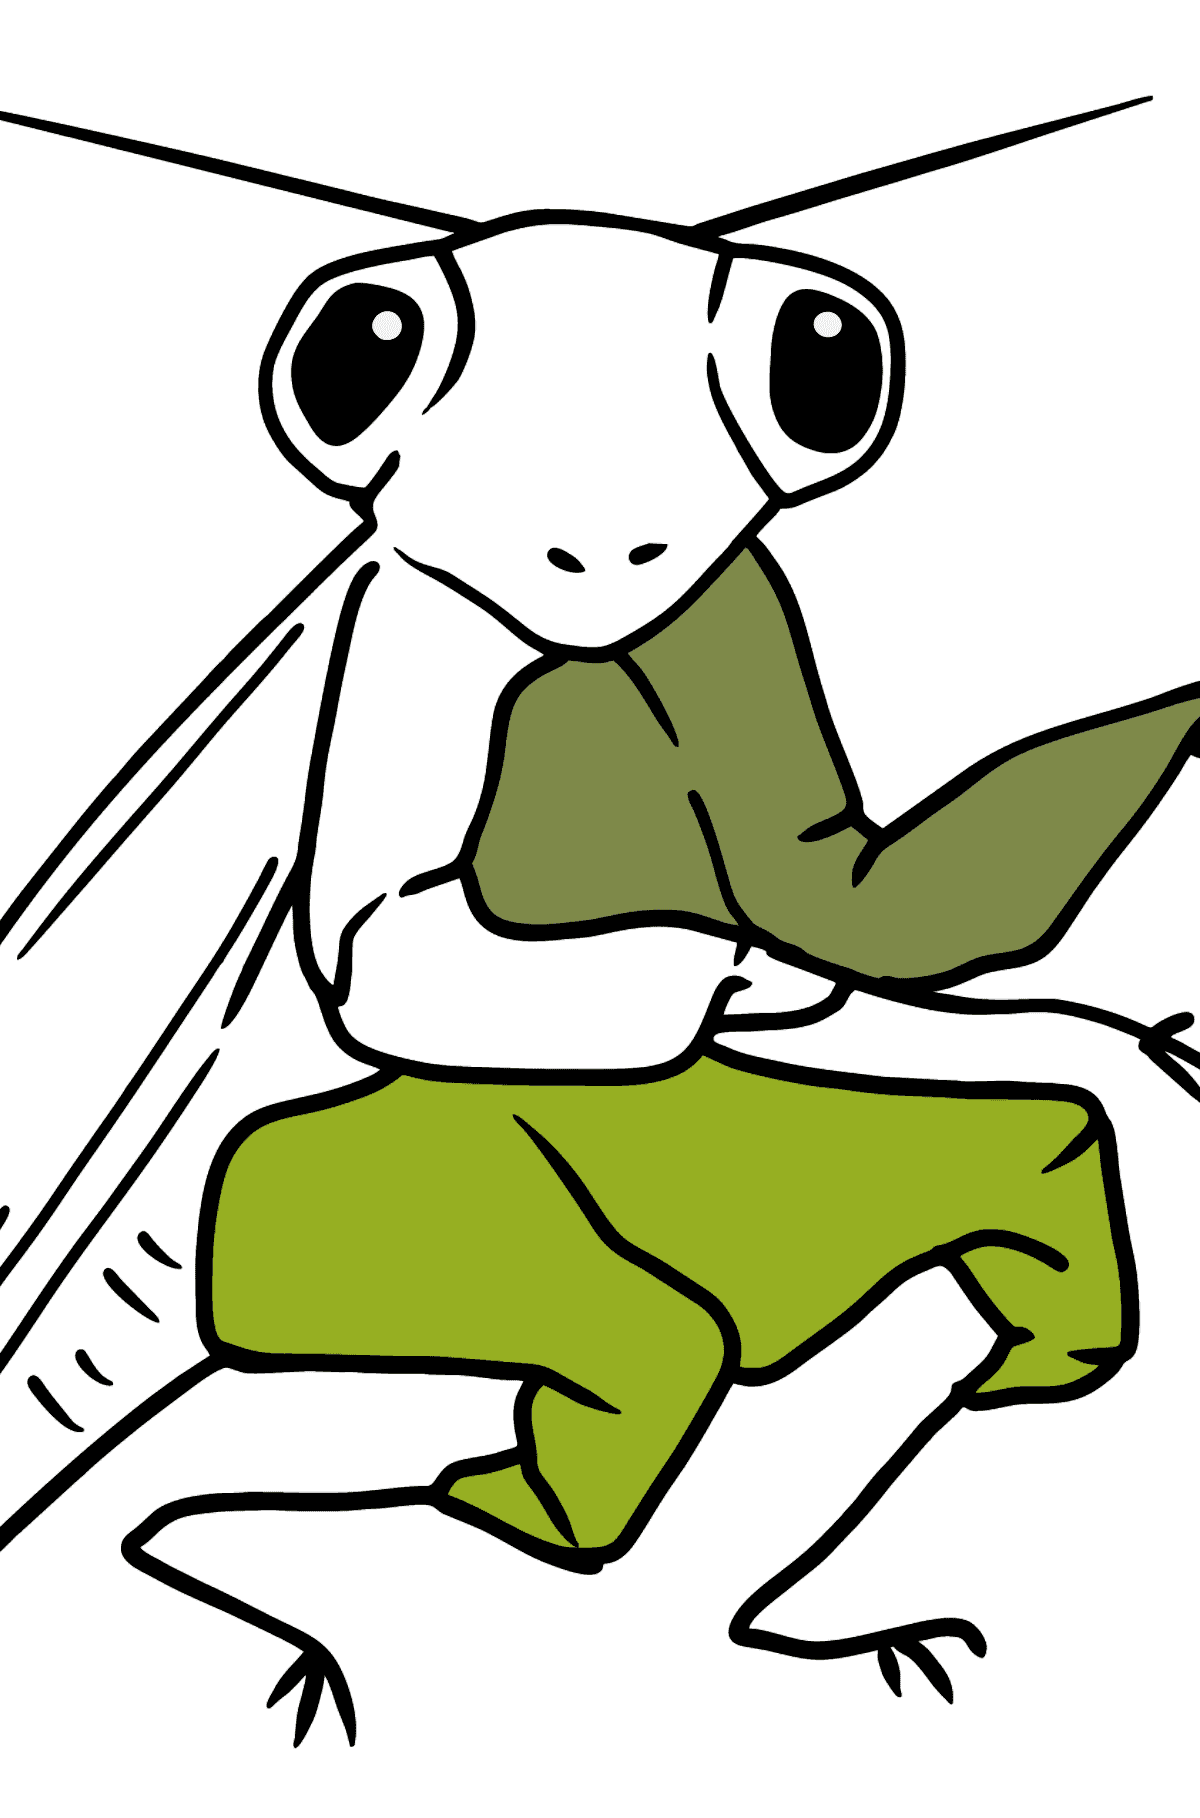 Mantis coloring page - Coloring Pages for Kids